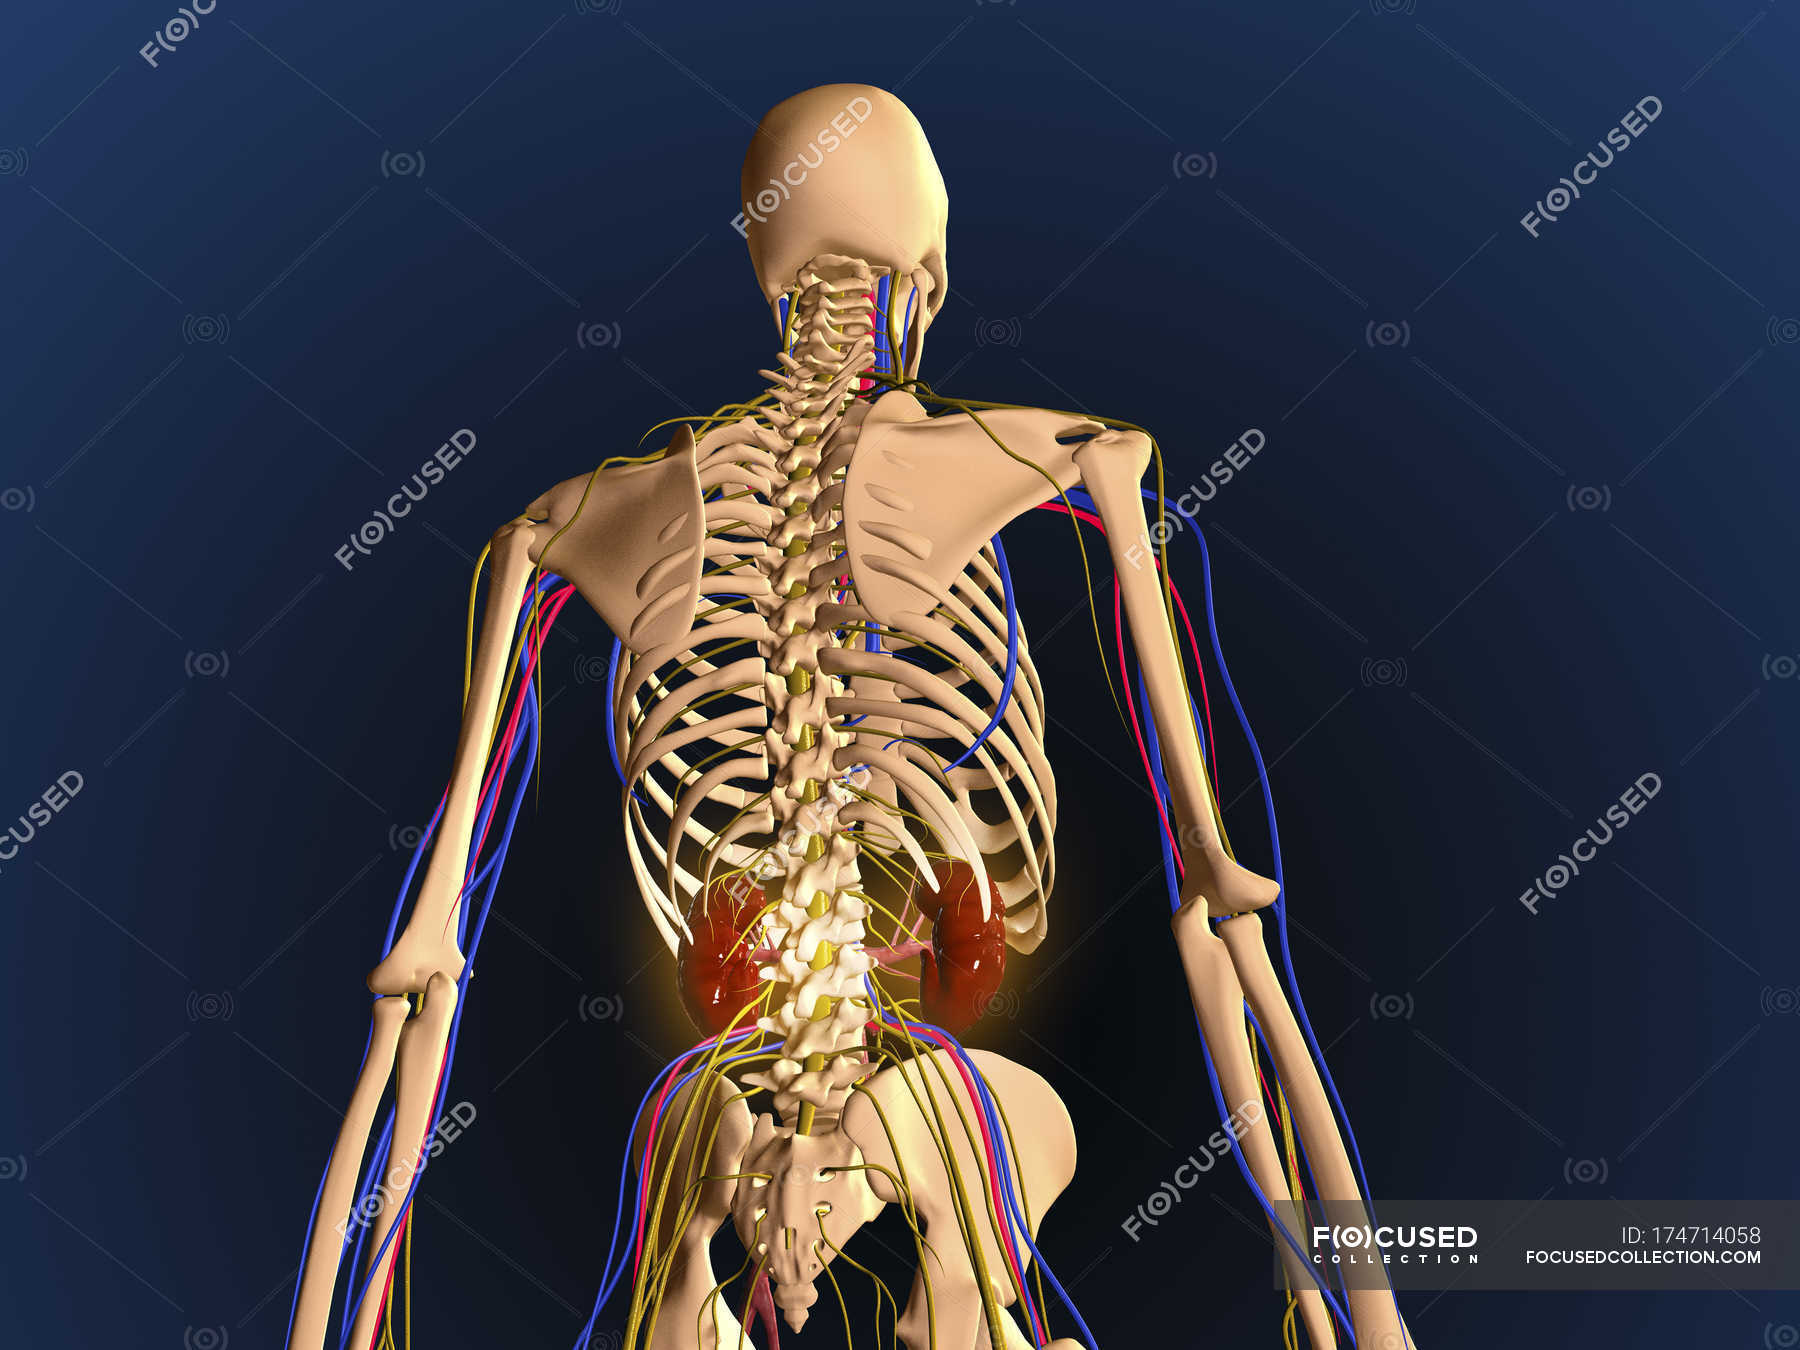 Rear view of human skeleton showing kidneys and nervous system rear view of human skeleton showing kidneys and nervous system stock photo 174714058 ccuart Image collections